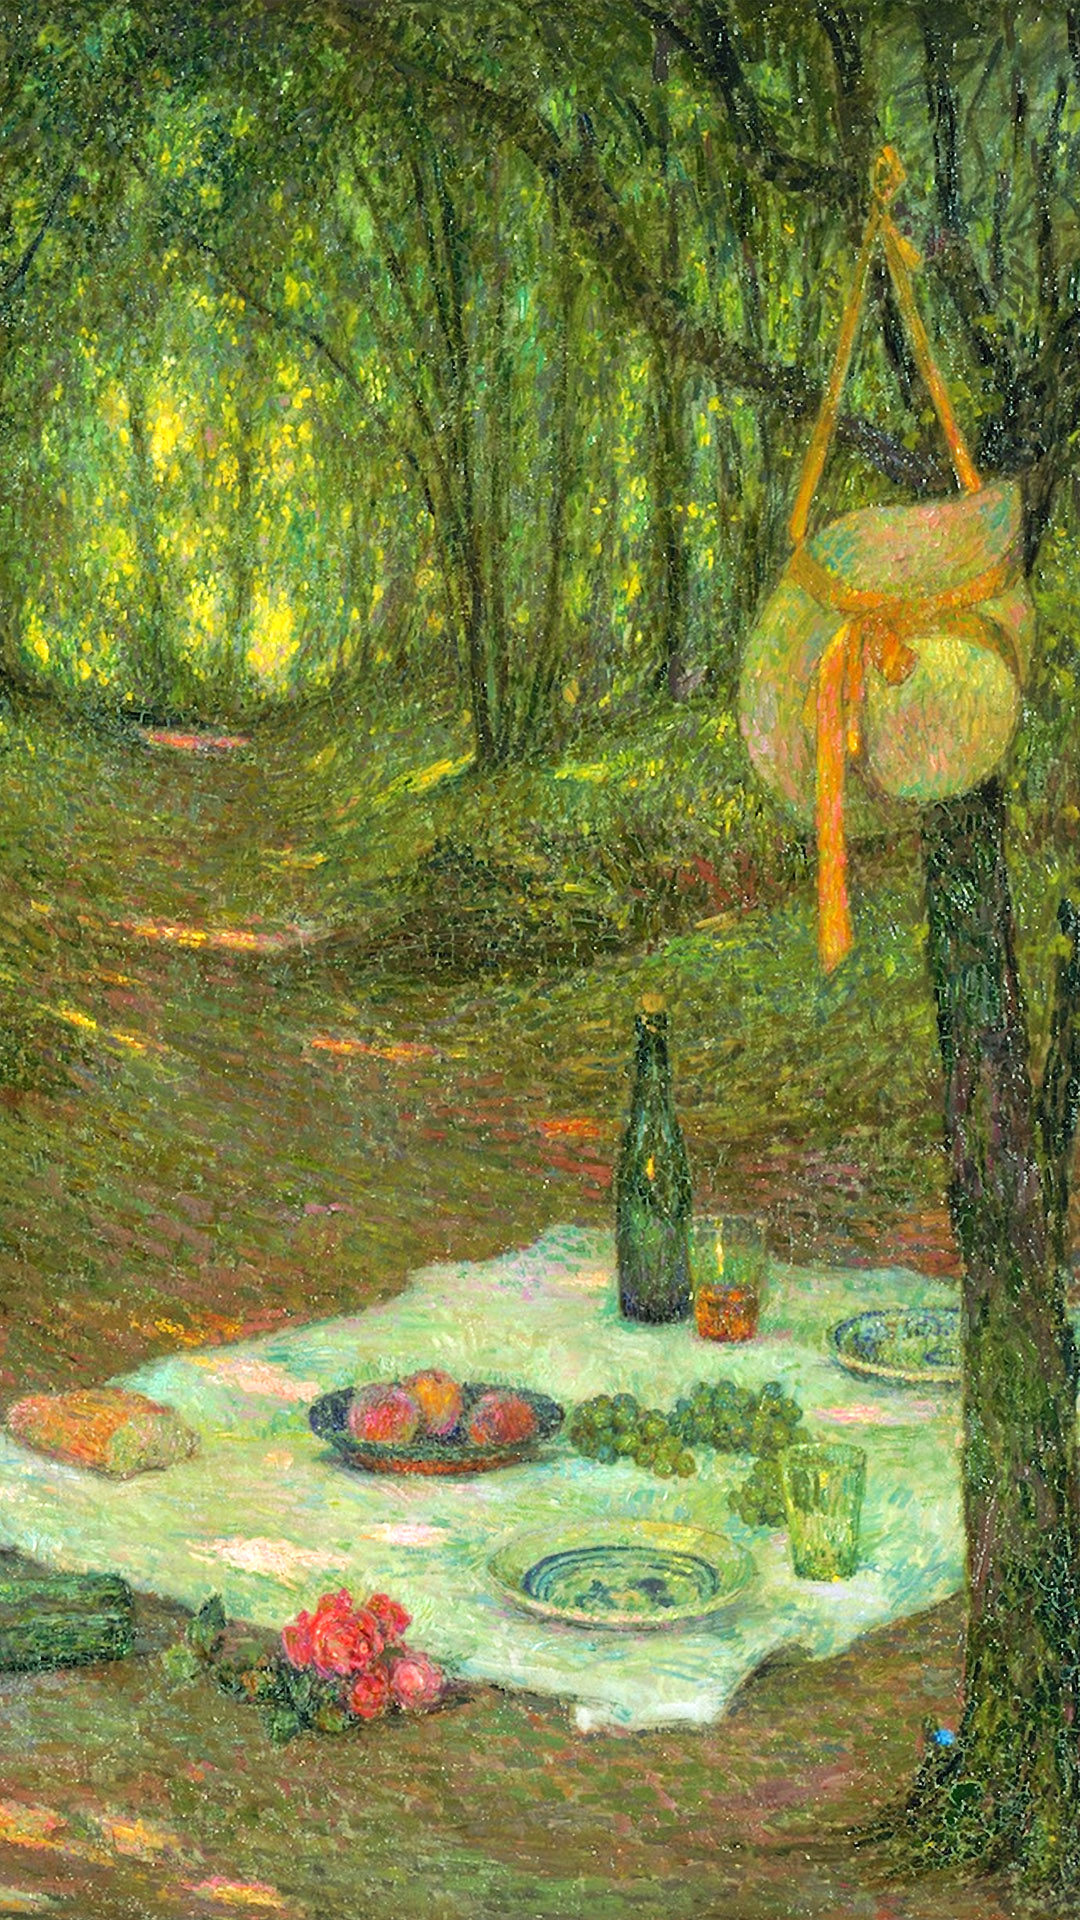 アンリ・ル・シダネル Henri Le Sidaner - A Break in the Woods, Gerberoy 1080x1920